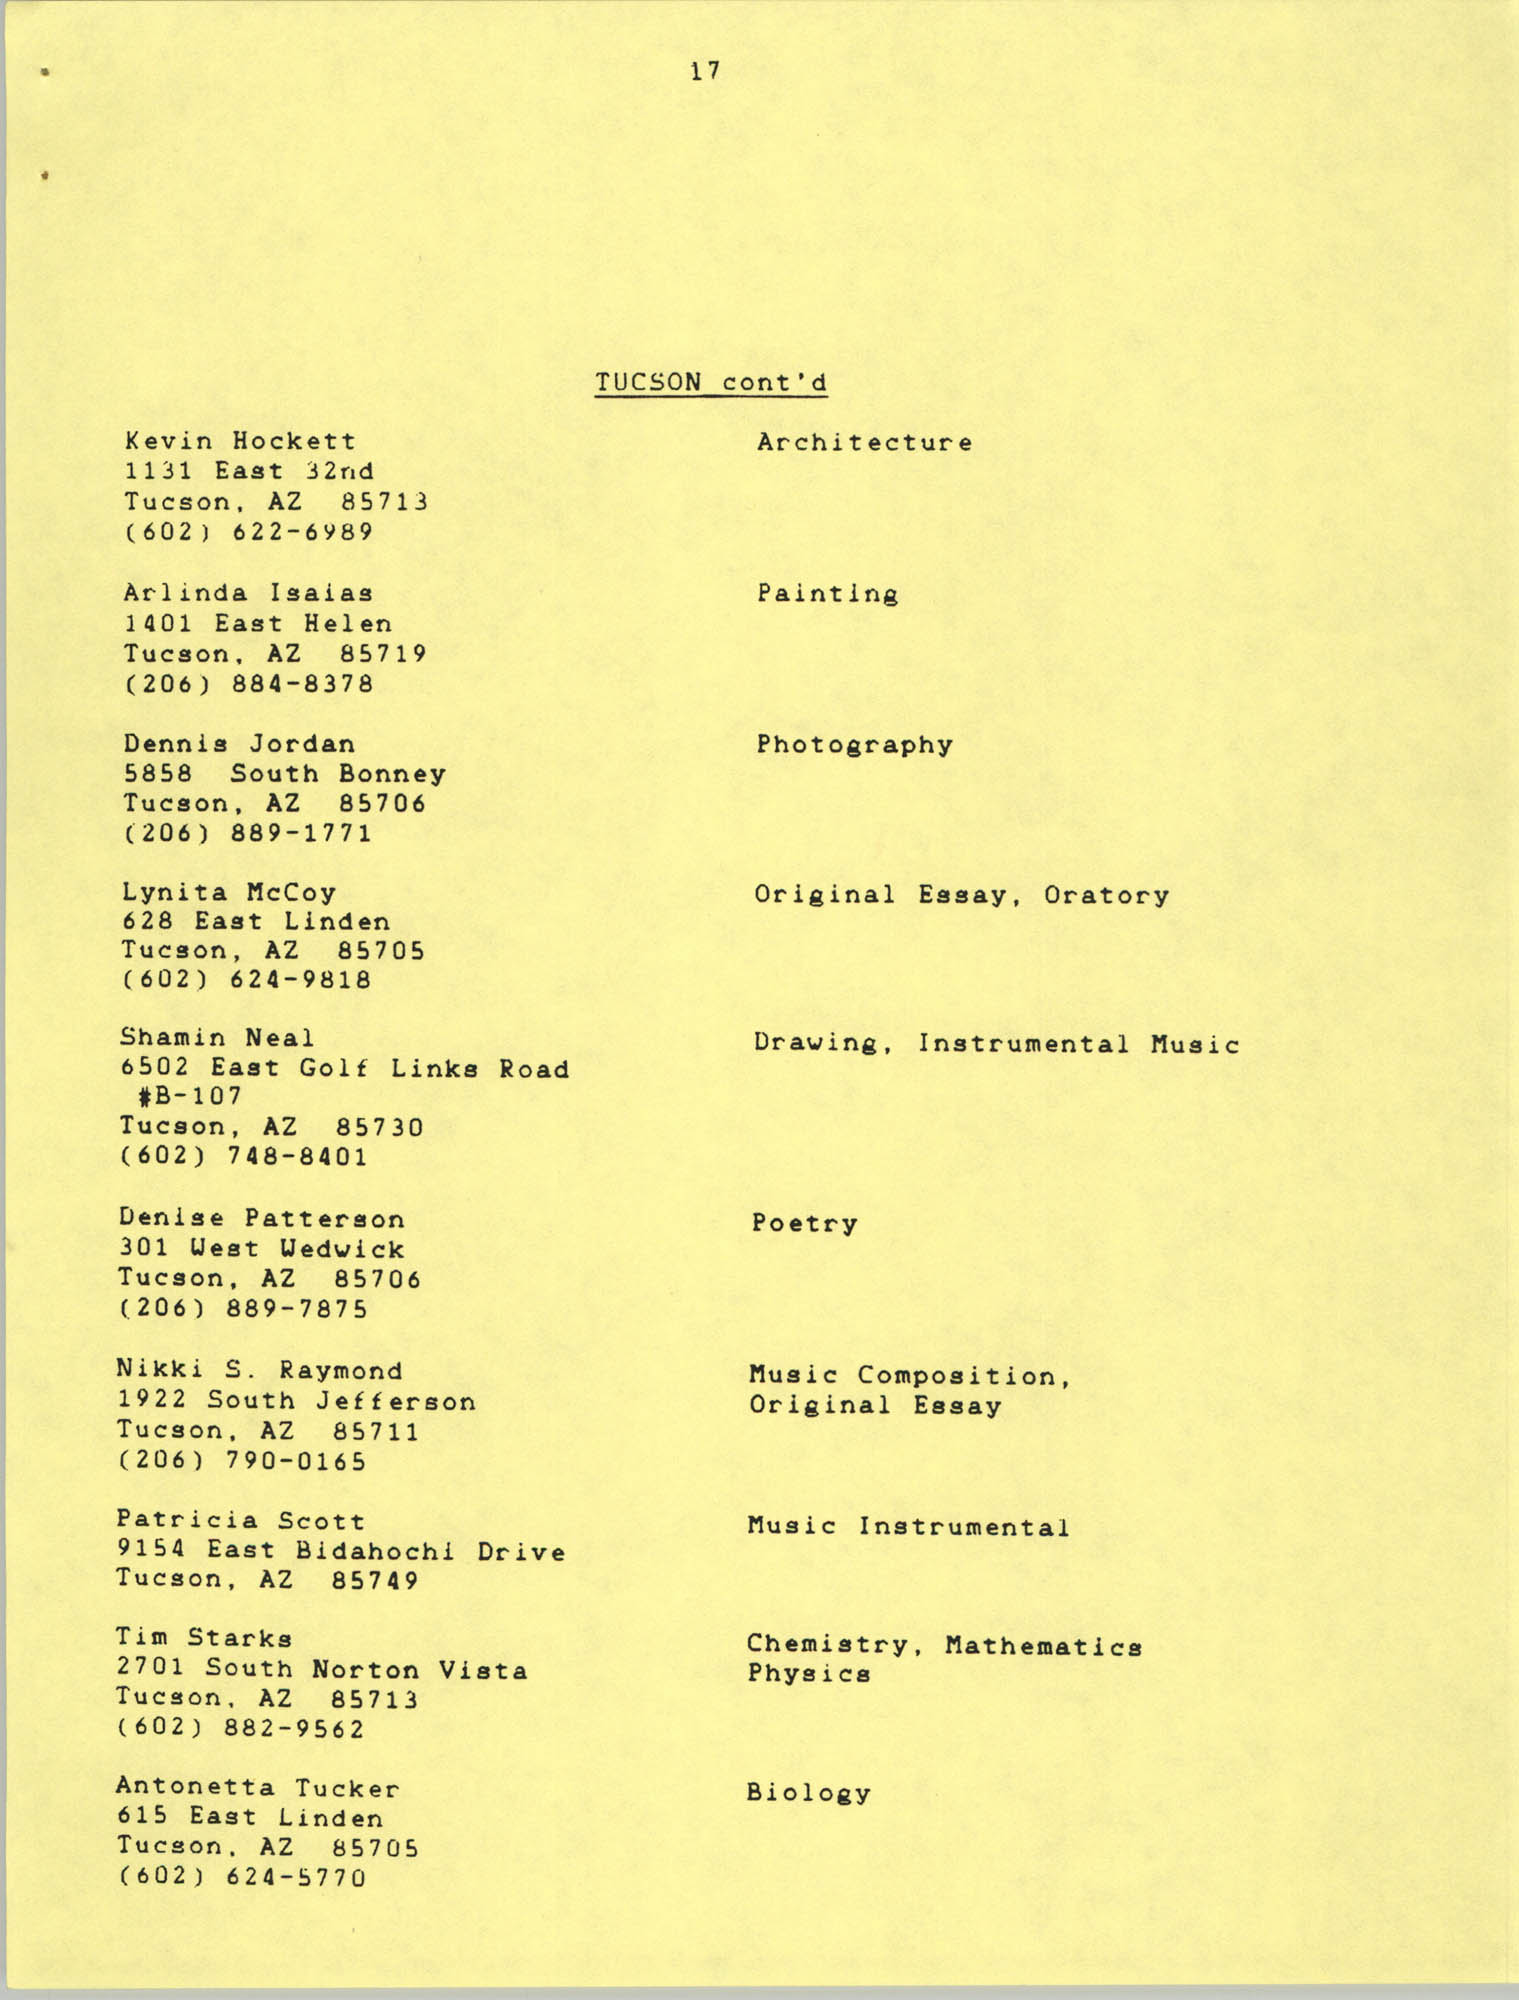 1987 Act-So Contestants, NAACP West Coast Region, Page 17